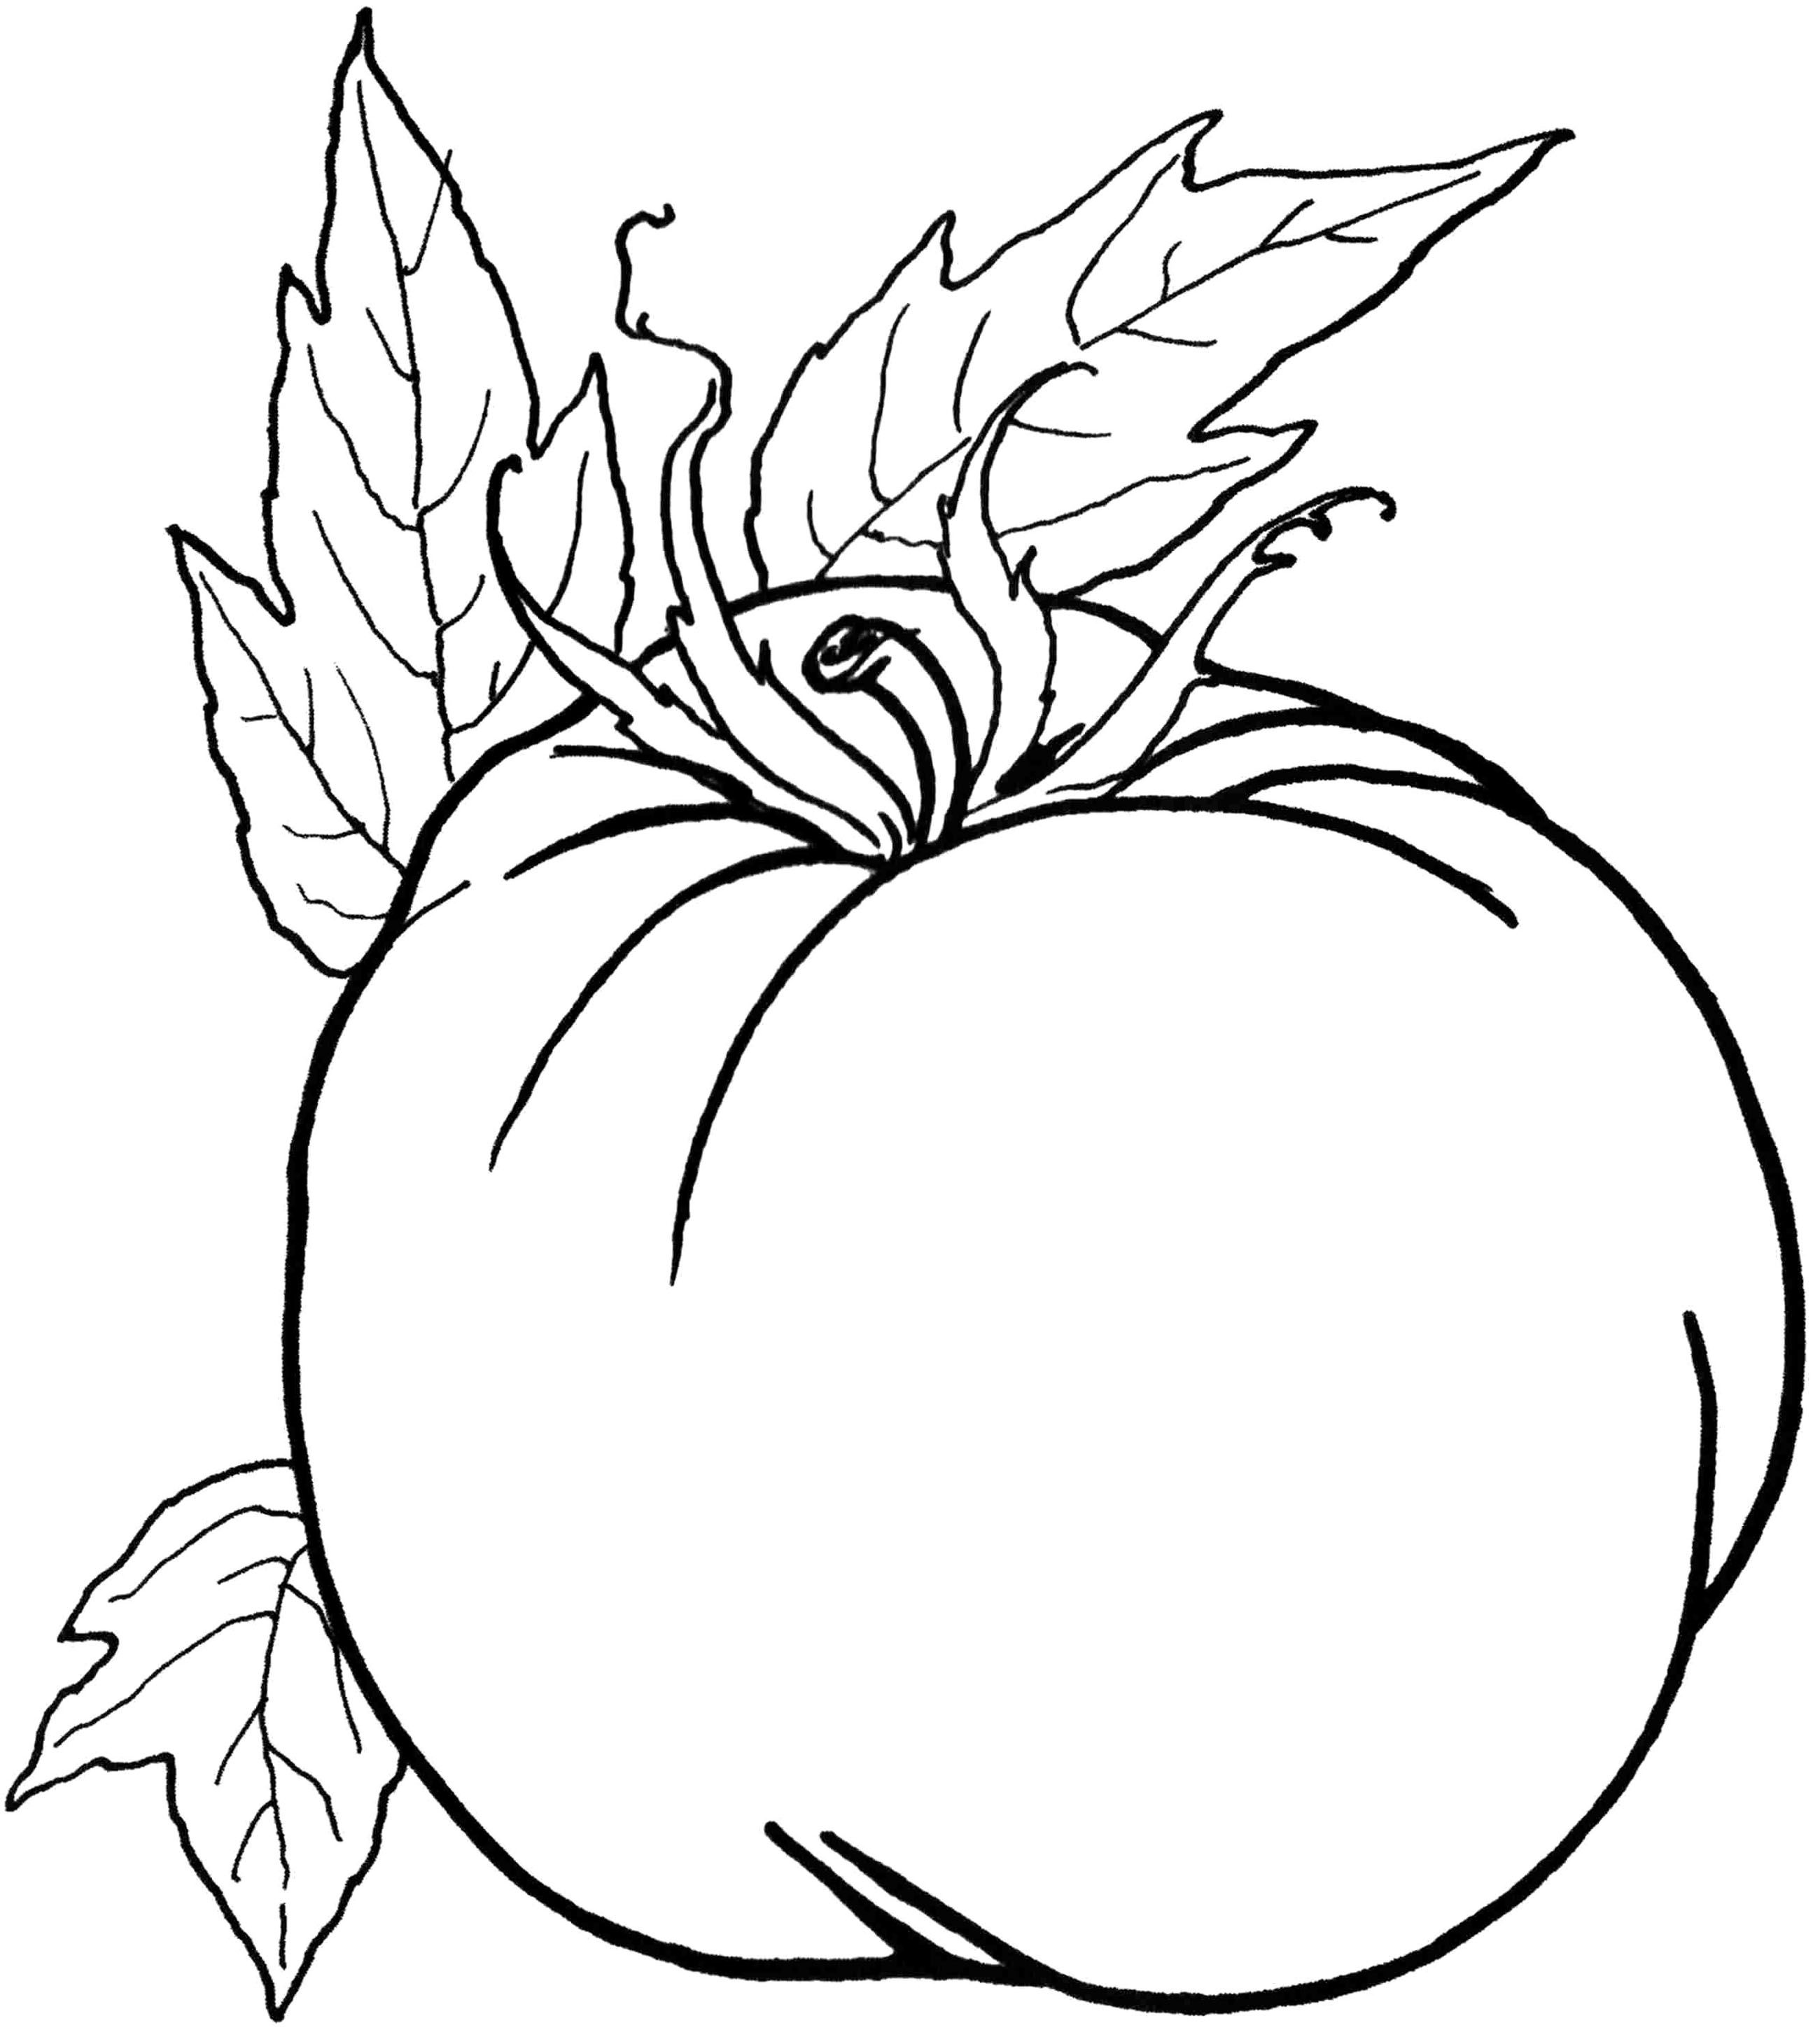 Pumpkin Vegetables Healthy Food Coloring Pages